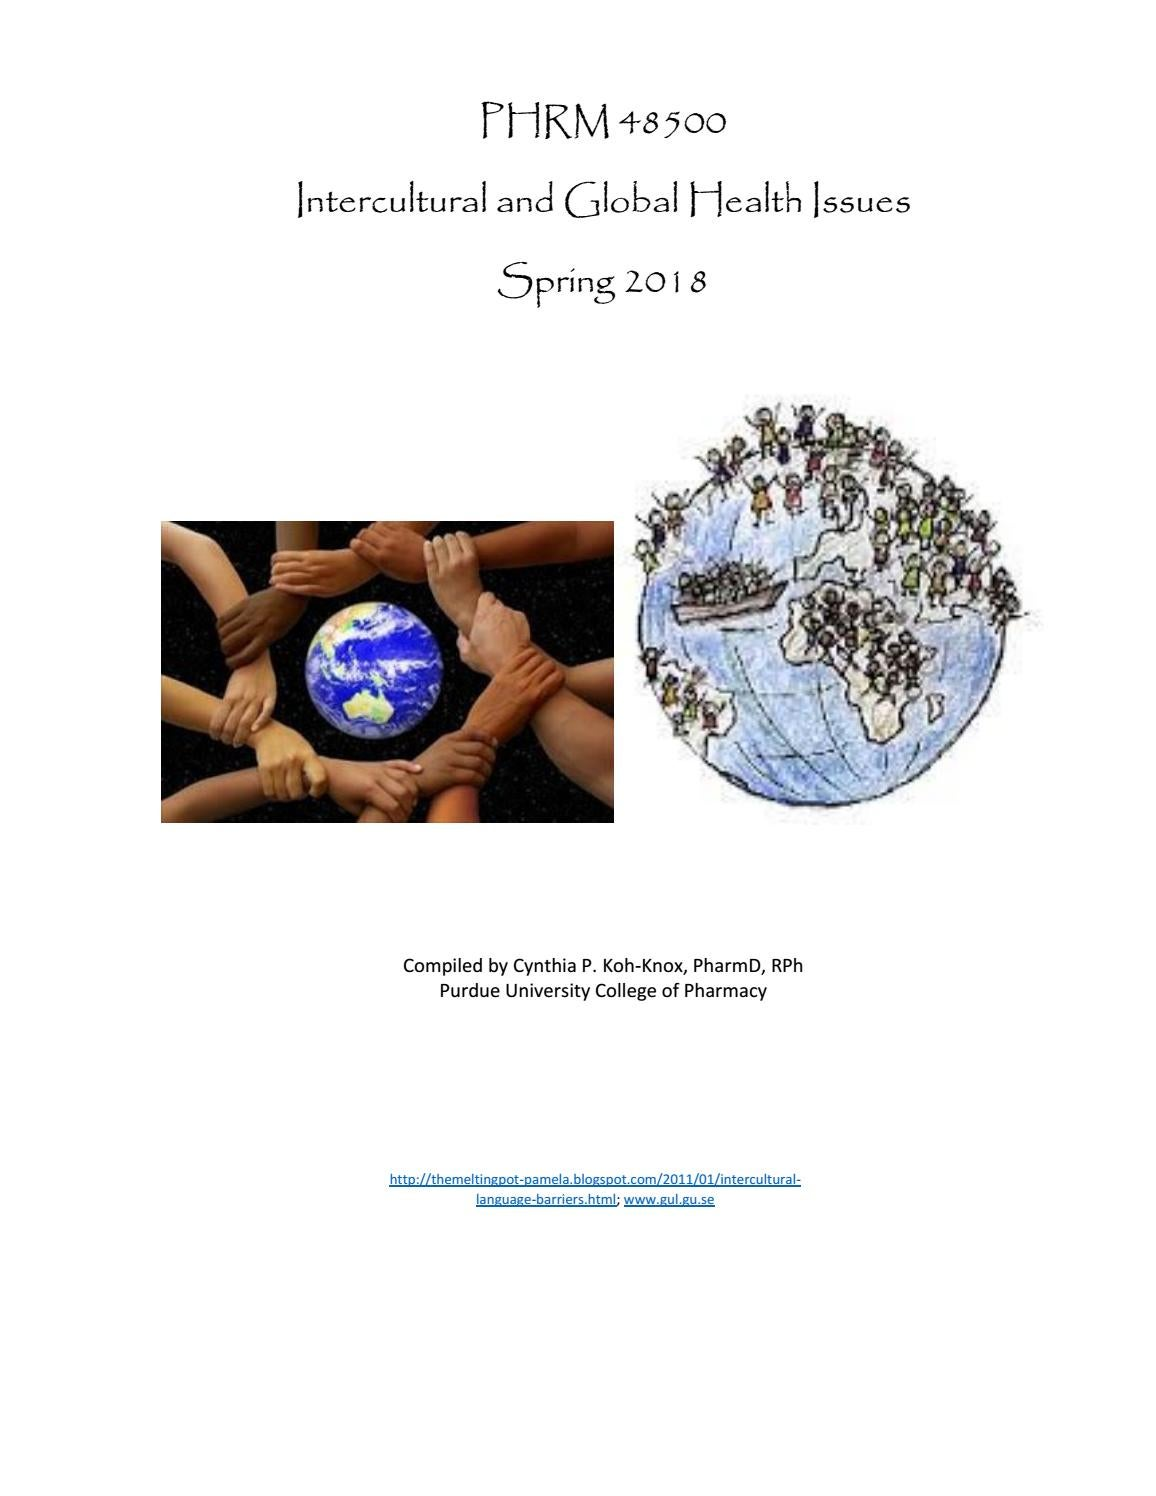 PHRM 485 Intercultural and Global Health Issues Spring 2018